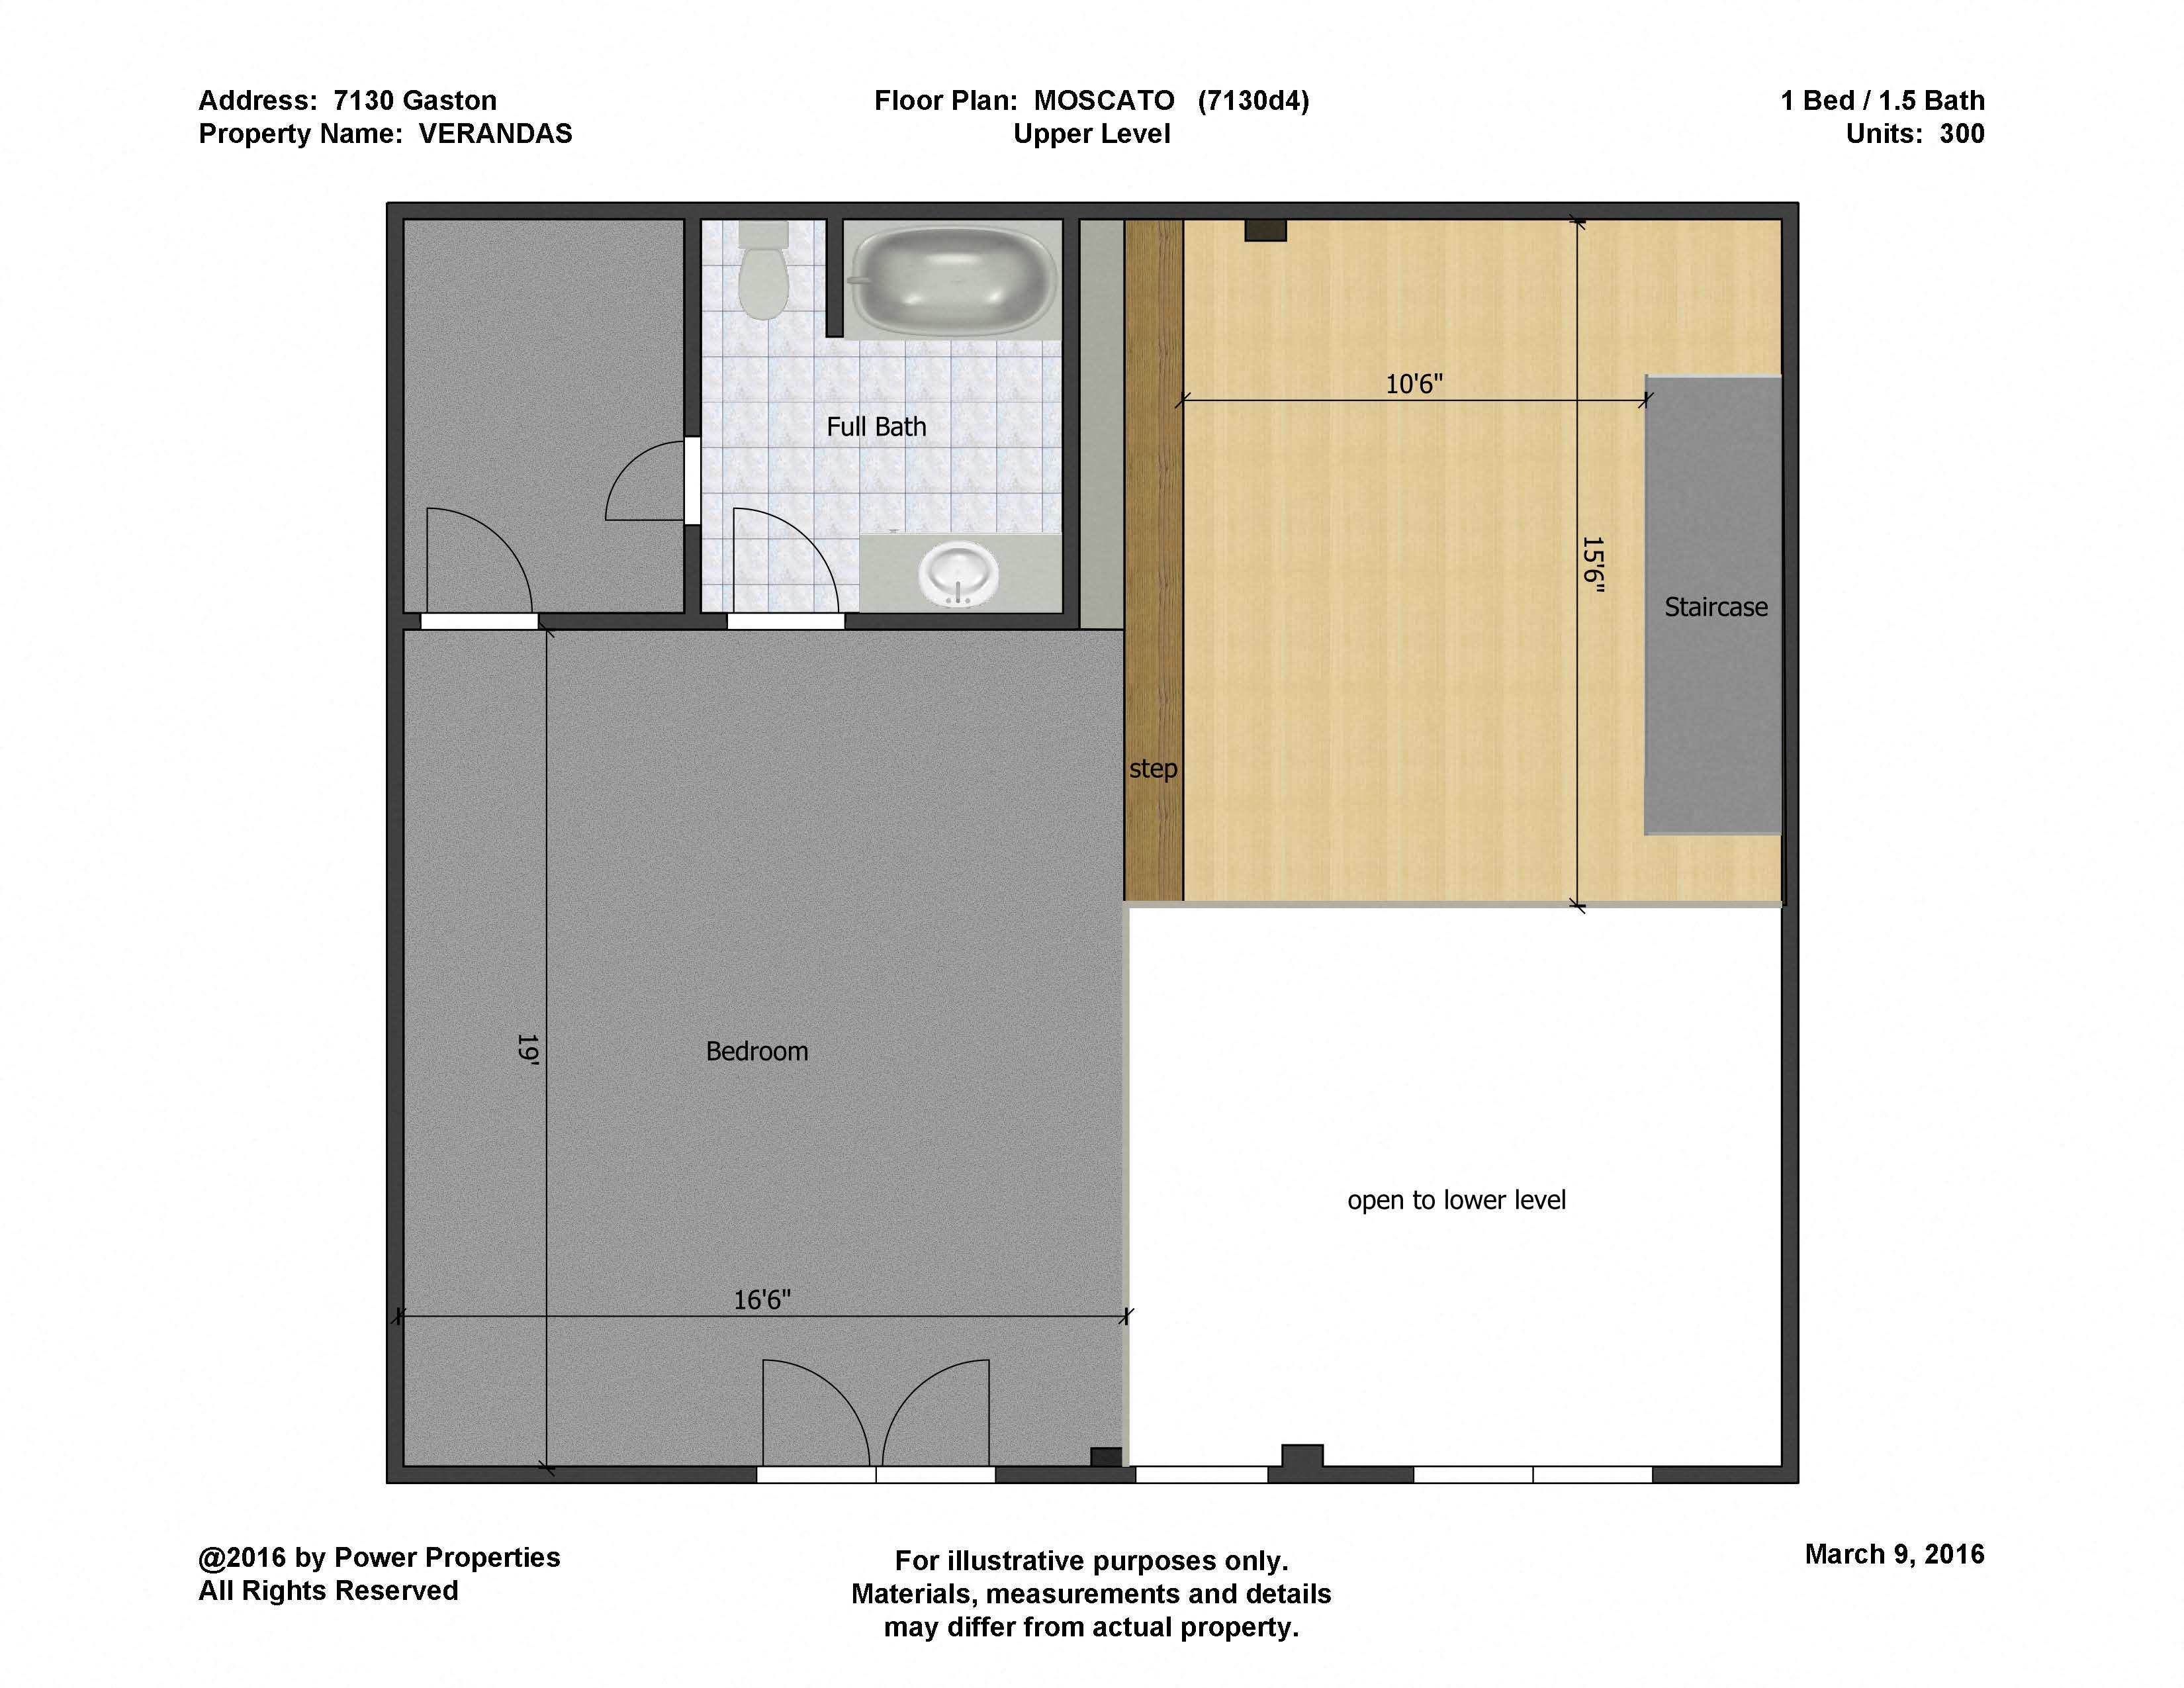 7130 Gaston VERANDAS - MOSCATO Lower Level (1 Bed - 2 Bath)